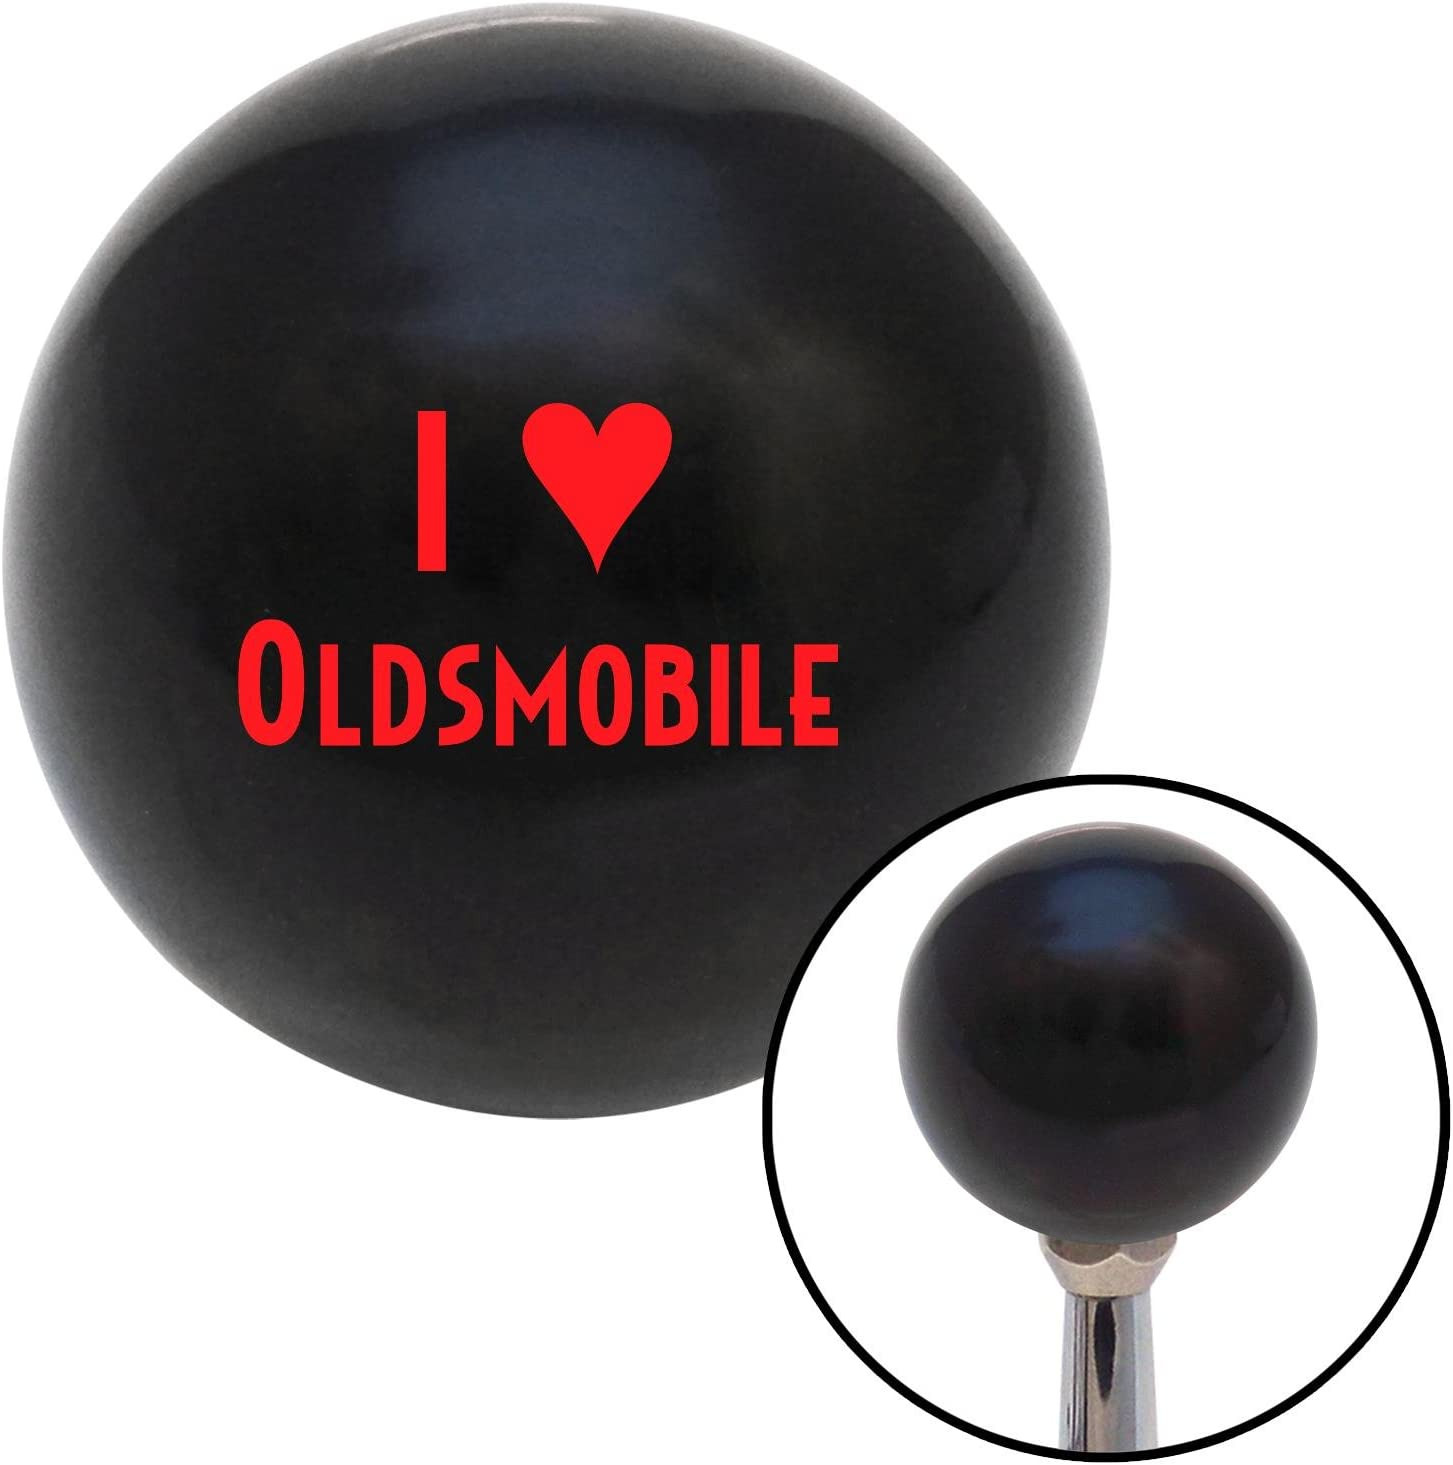 Red I 3 Oldsmobile American Shifter 105803 Black Shift Knob with M16 x 1.5 Insert